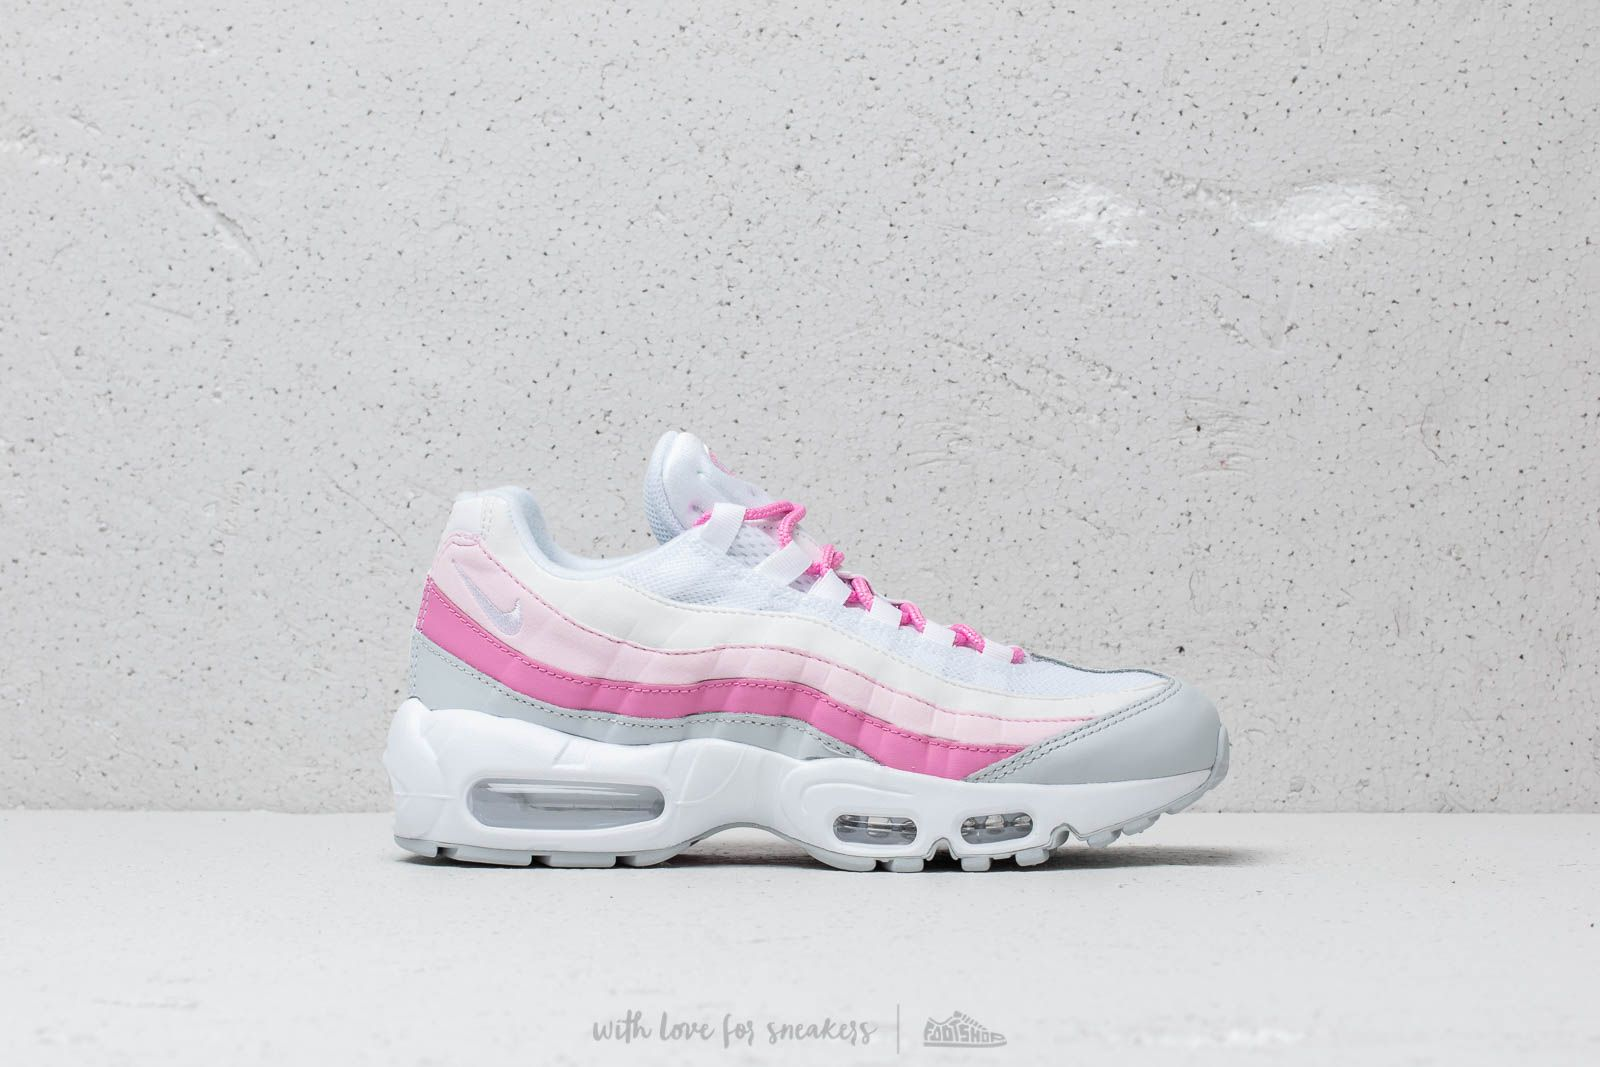 separation shoes 6cabc 48c92 Nike W Air Max 95 Essential White/ White-Psychic Pink-Pure ...